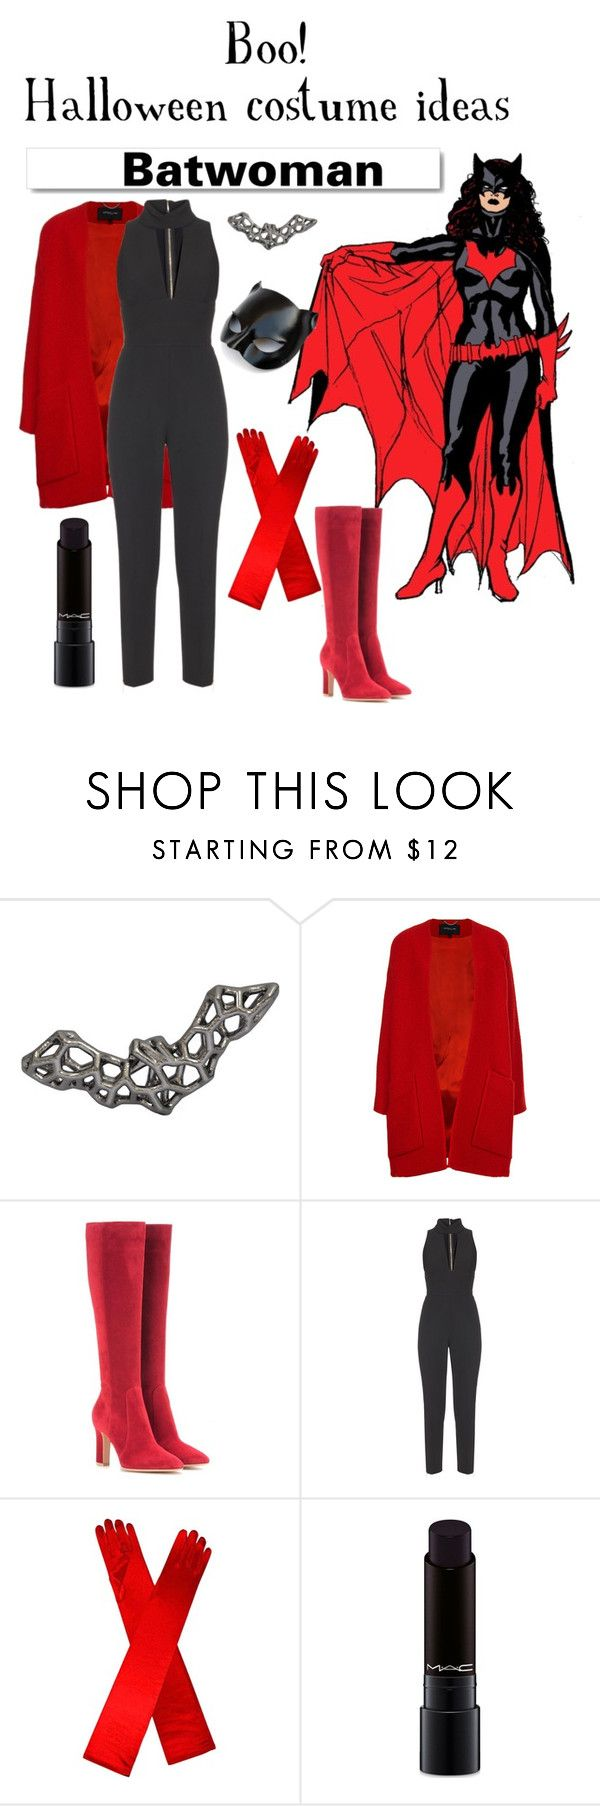 """""""Batwoman halloween costume idea"""" by rannerliling ❤ liked on Polyvore featuring Derek Lam, White Label, Gianvito Rossi, Elie Saab, Masquerade and MAC Cosmetics"""